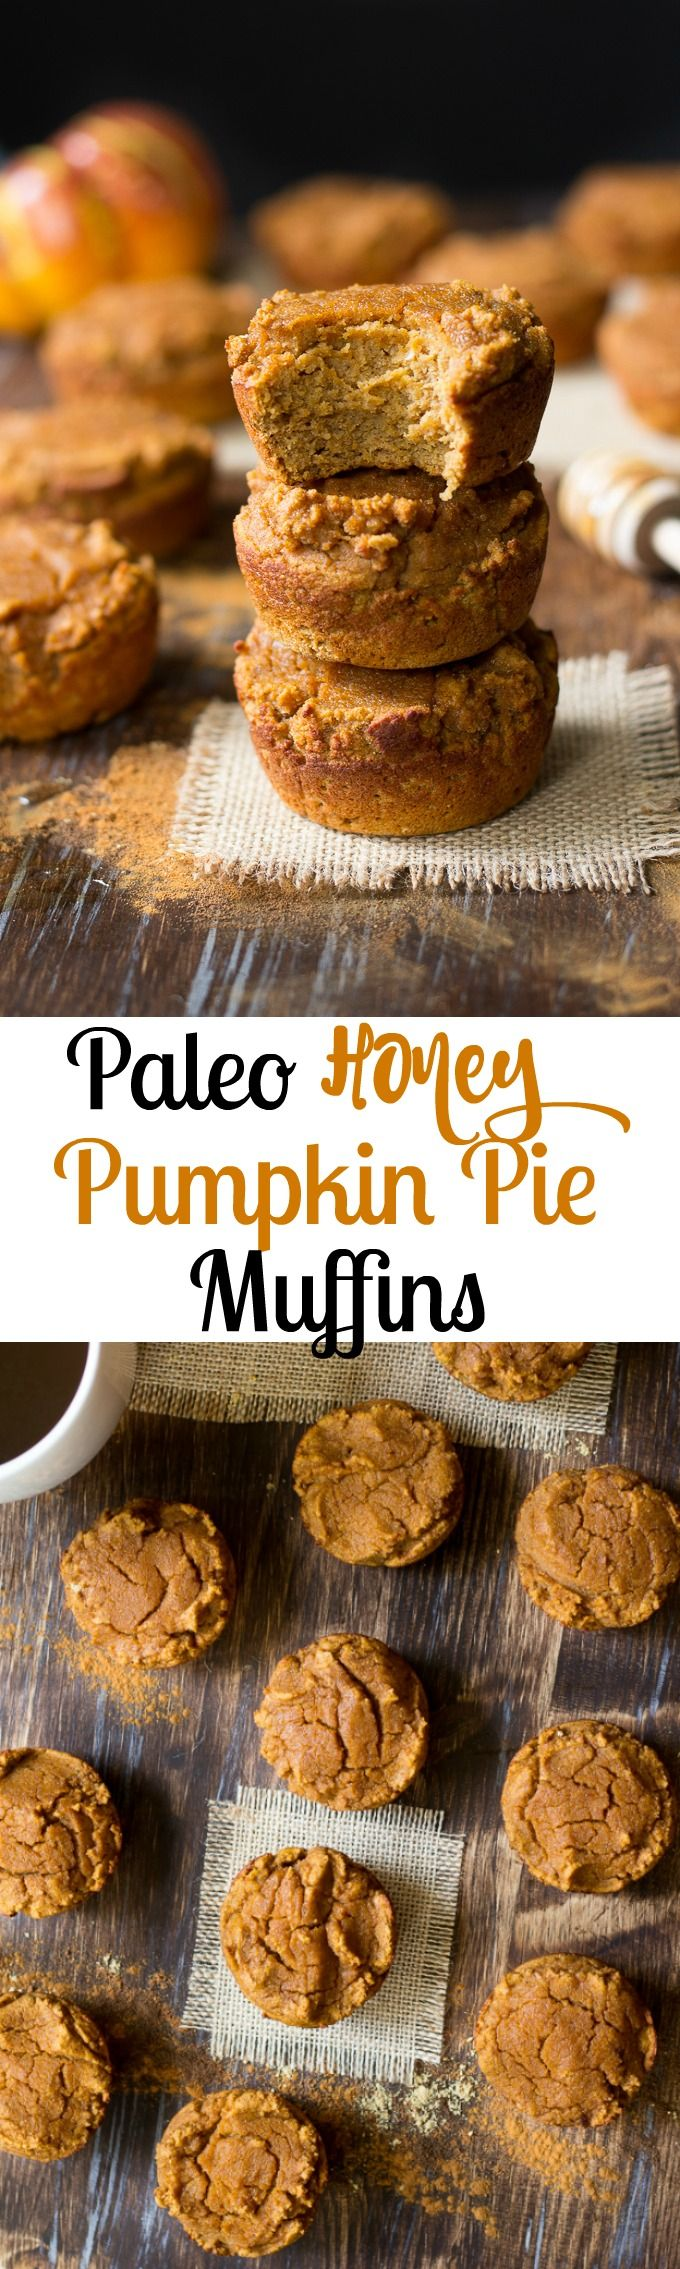 Paleo honey pumpkin pie muffins - easy to make, healthy, grain free pumpkin pie muffins sweetened with raw honey